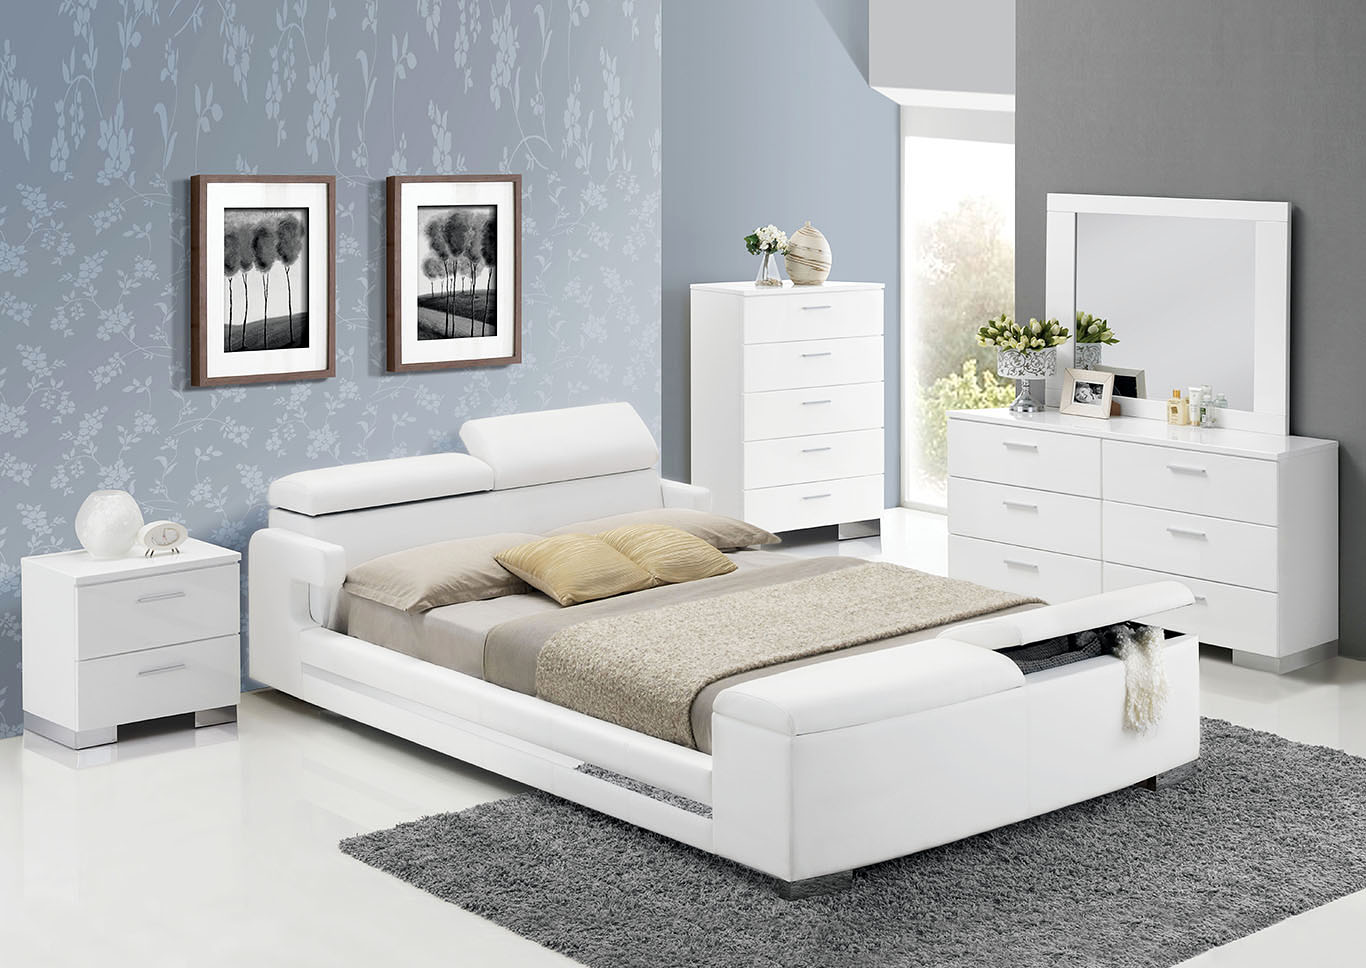 Layla White Queen Bed,Acme